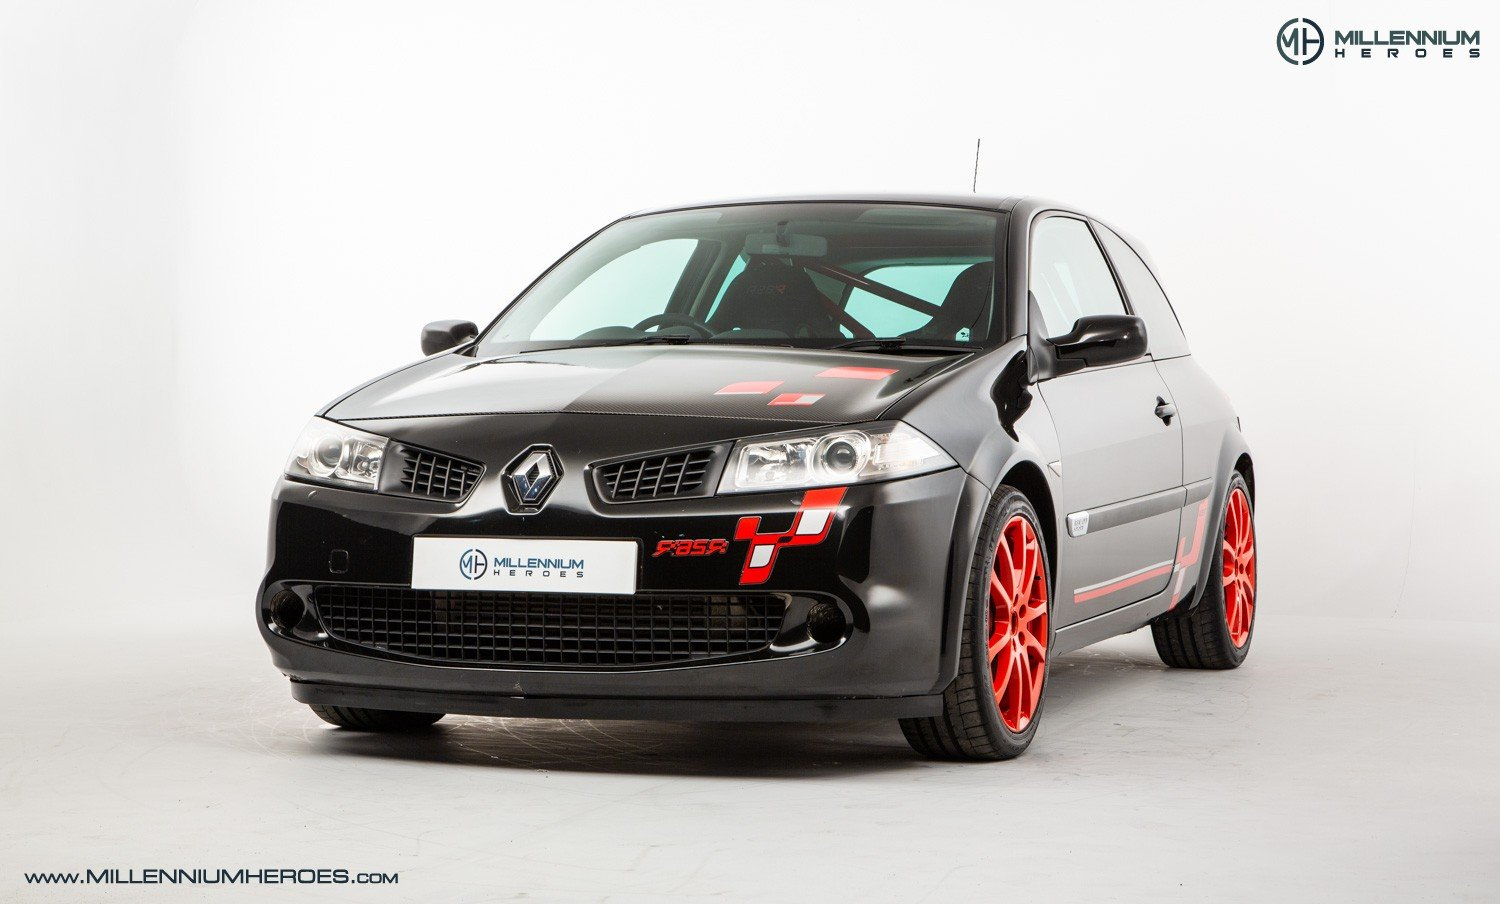 2008 RENAULT MEGANE RENAULTSPORT R26.R For Sale (picture 2 of 7)